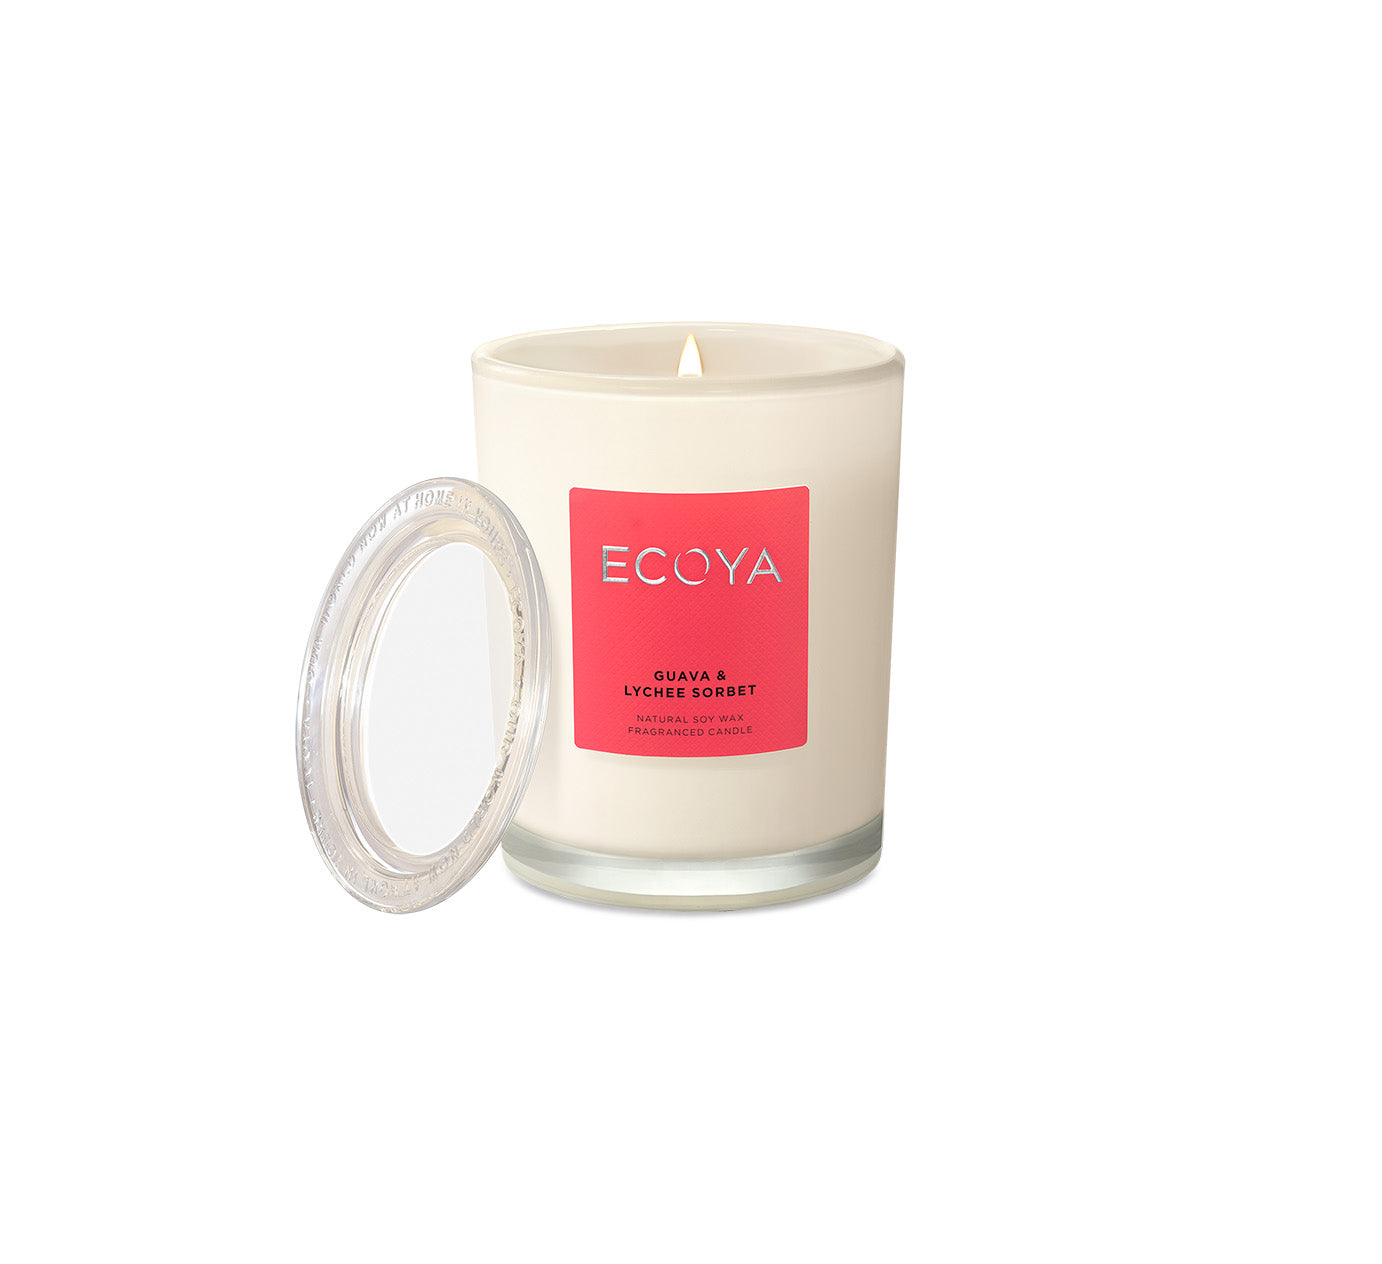 Guava & Lychee Sorbet Metro Candle